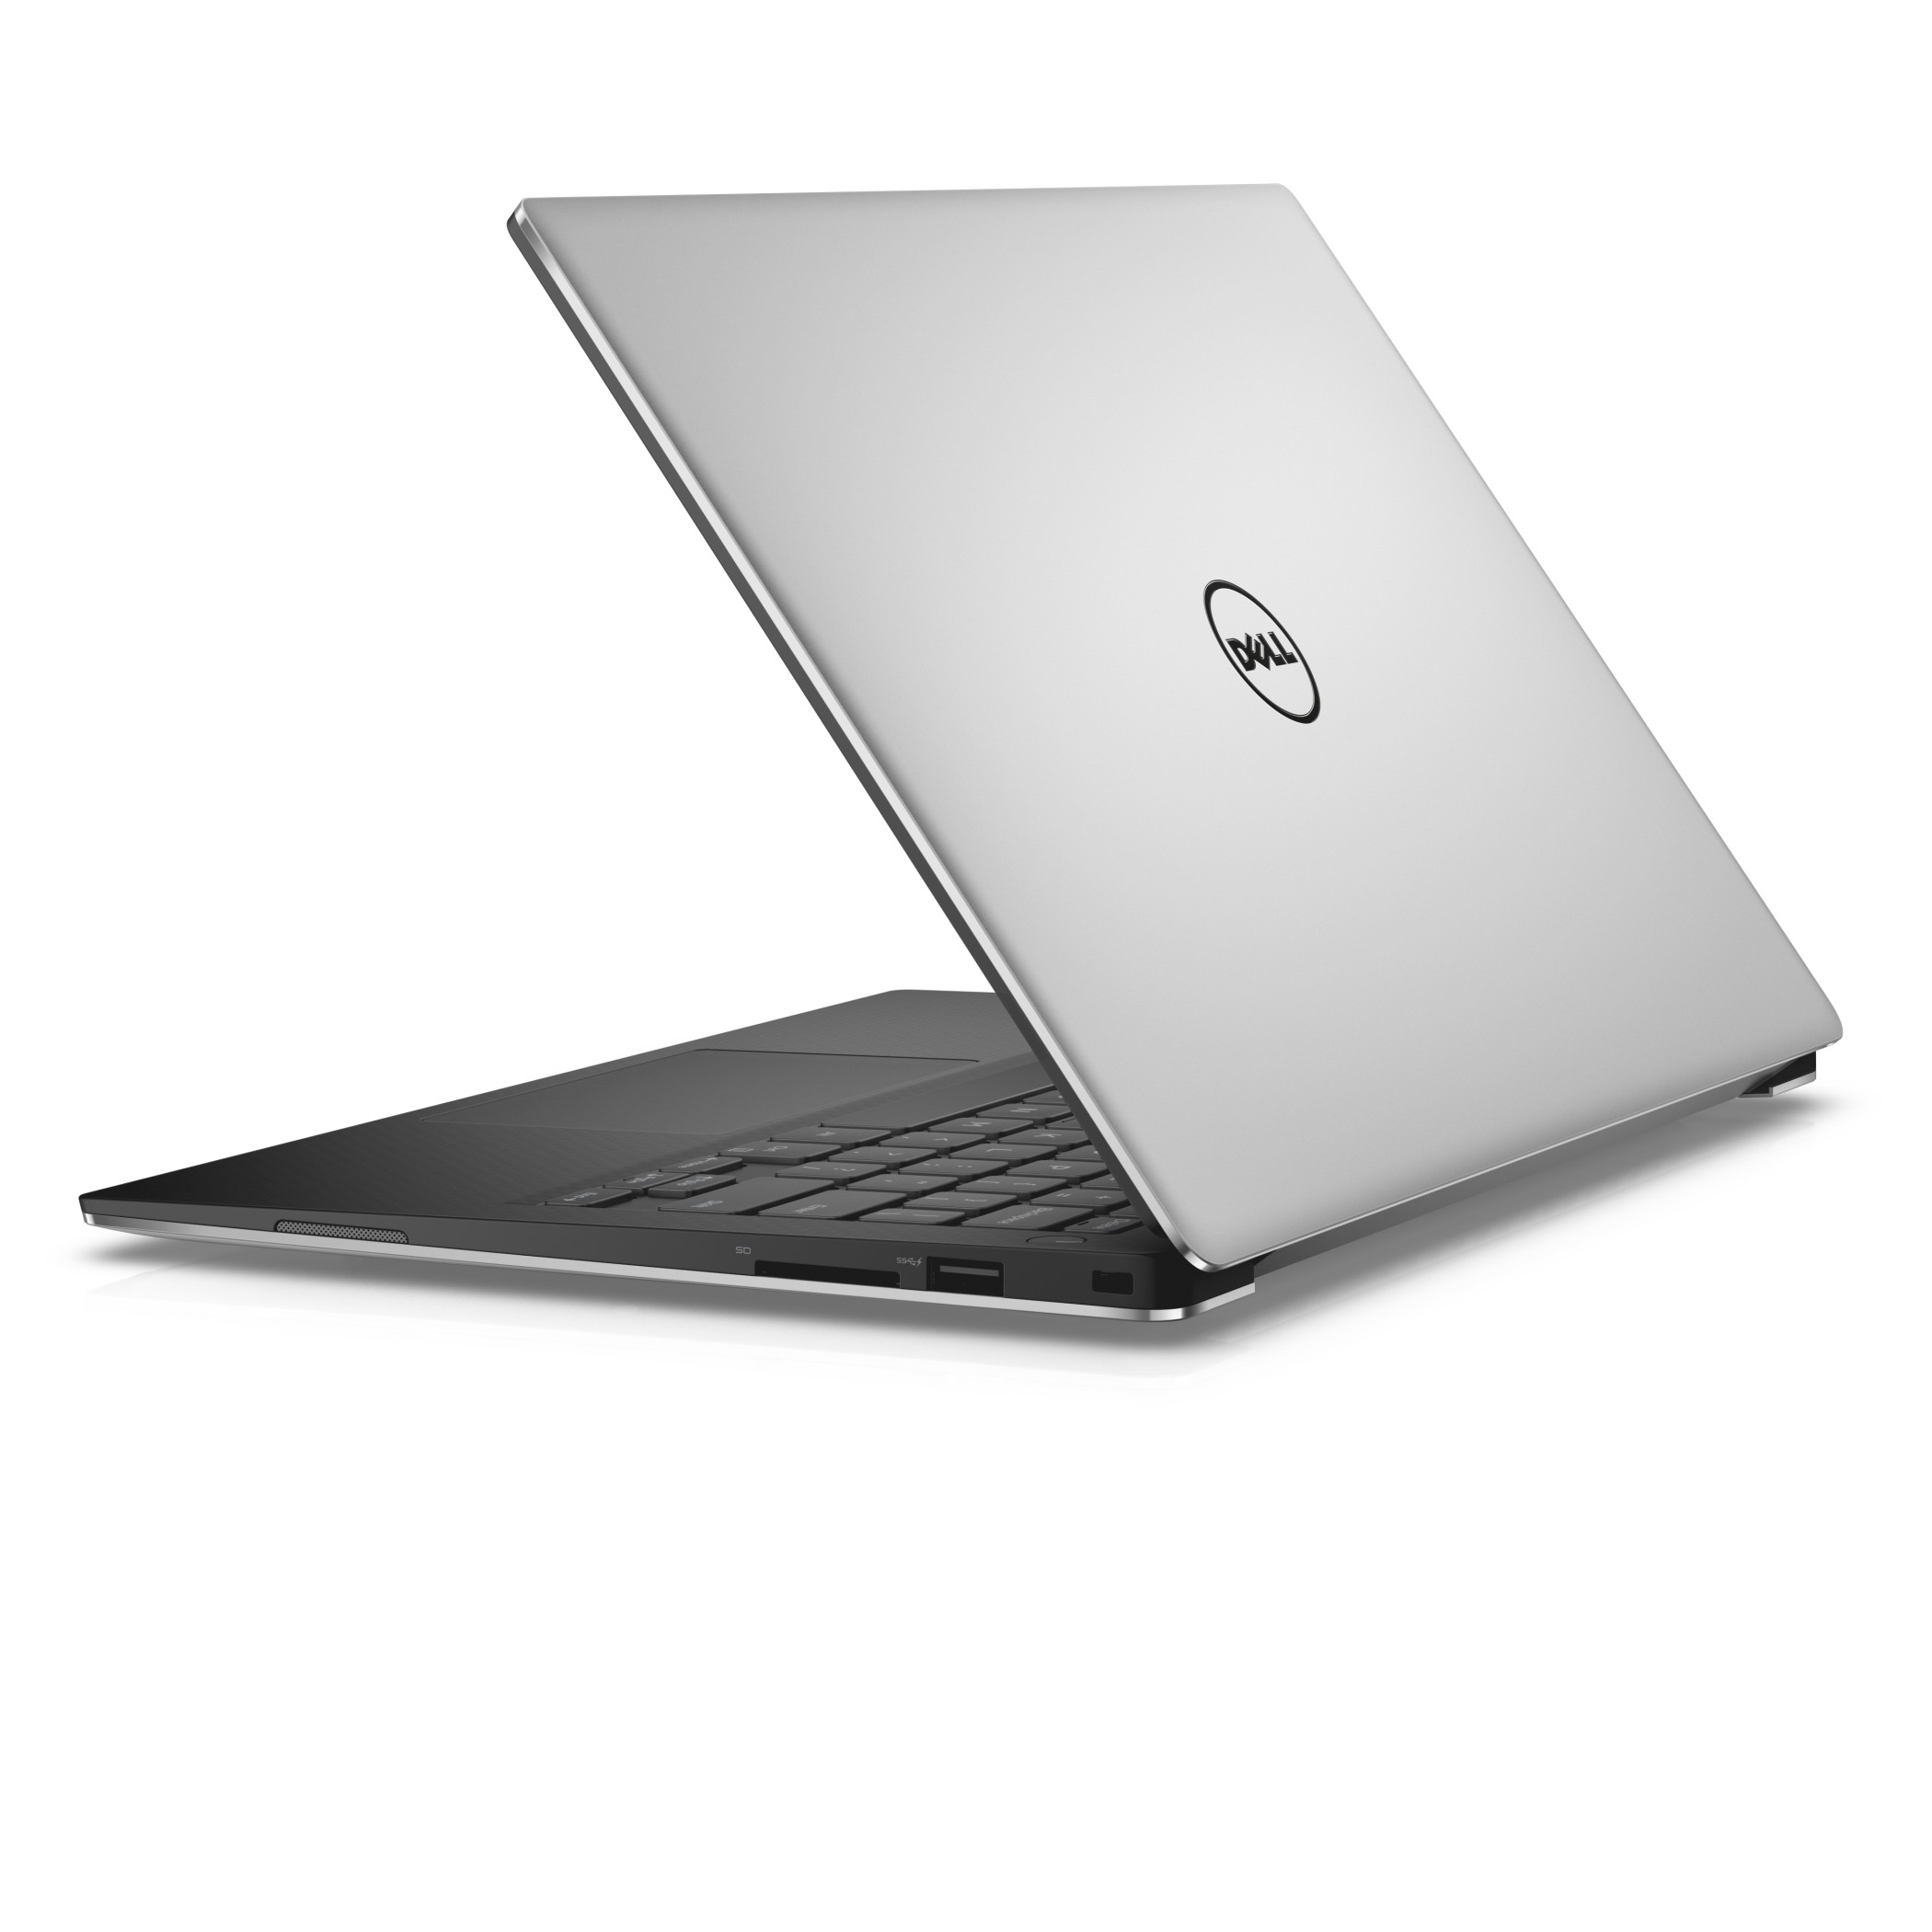 "Dell XPS 13 9350 13"" FHD i5-6200U/4GB/128GB SSD/WIFI/BT/W10 (64-bit)/2RNBD"